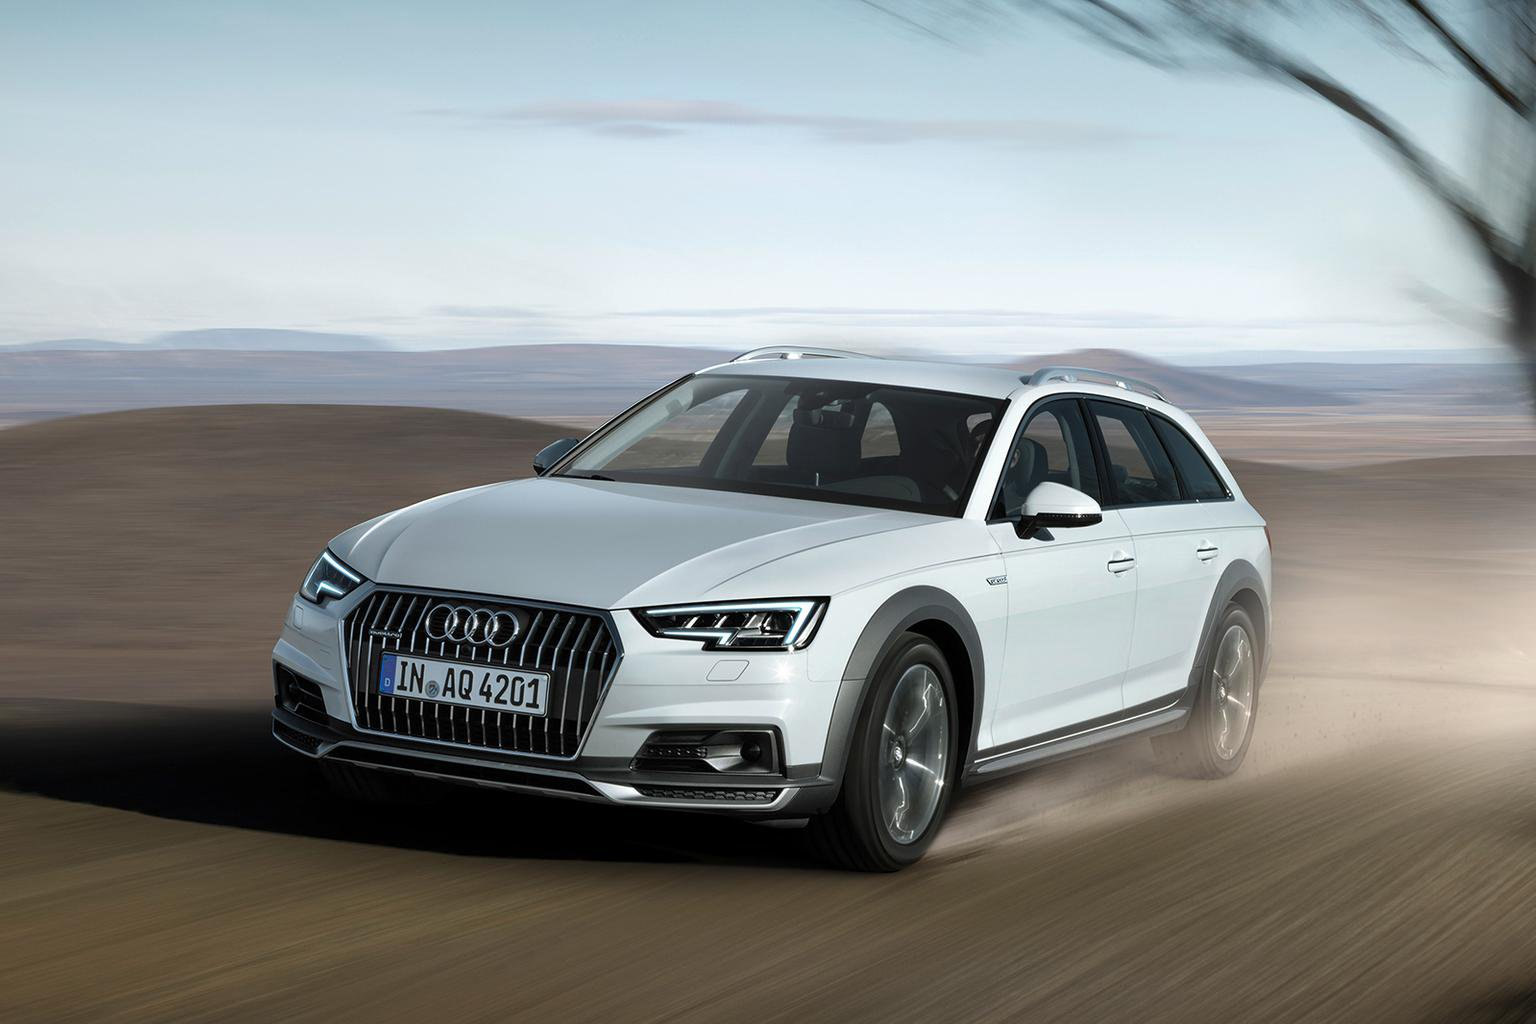 New Audi A4 Allroad quattro to go on sale this summer